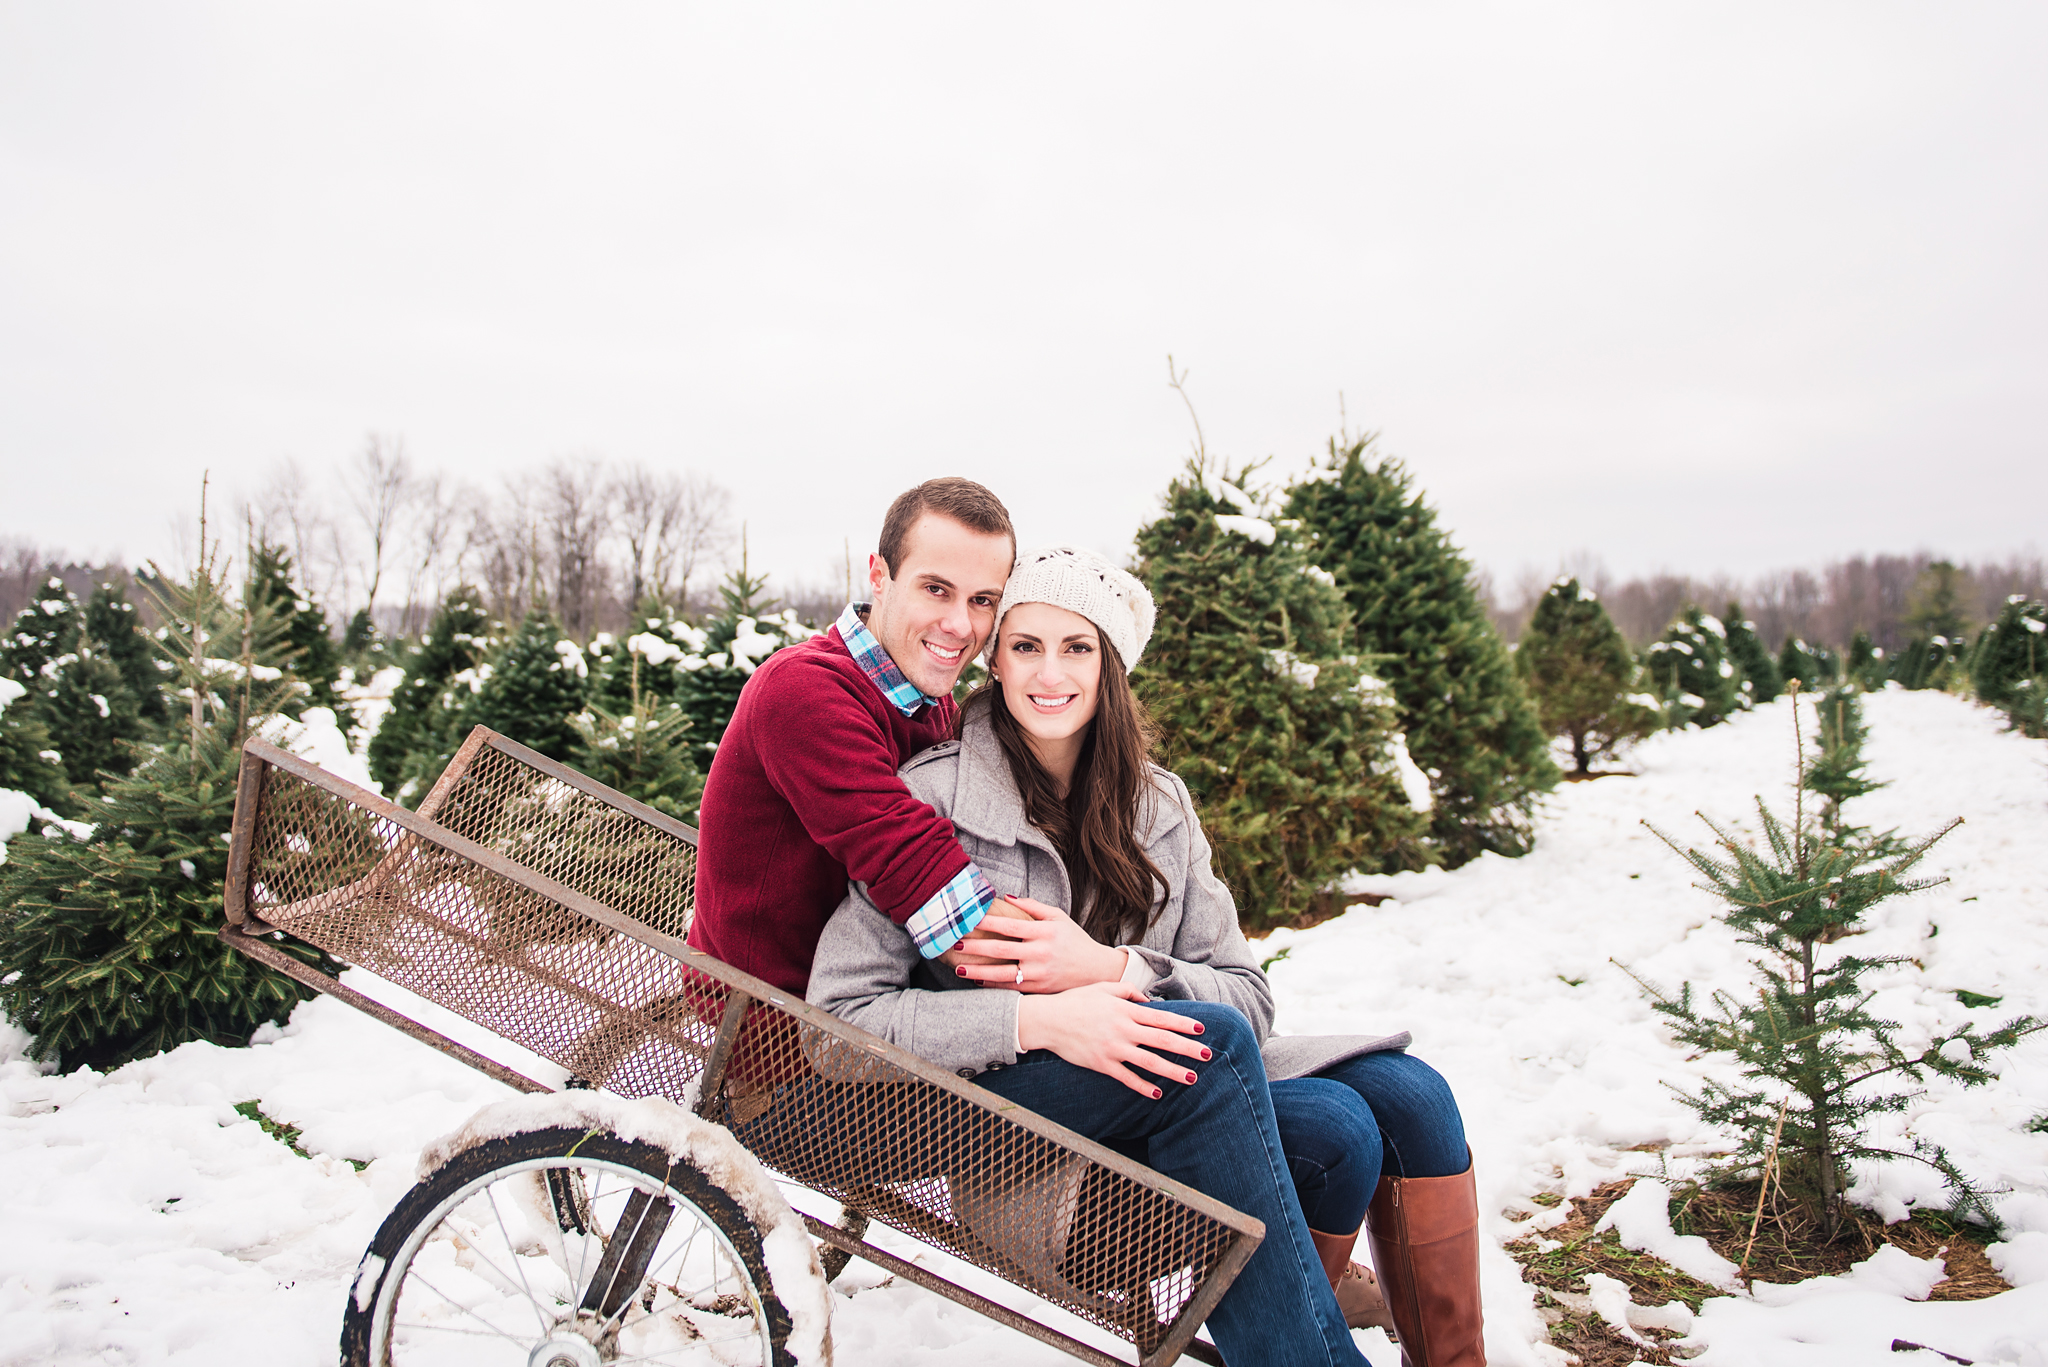 Woody_Acres_Rochester_Engagement_Session_JILL_STUDIO_Rochester_NY_Photographer_154255.jpg